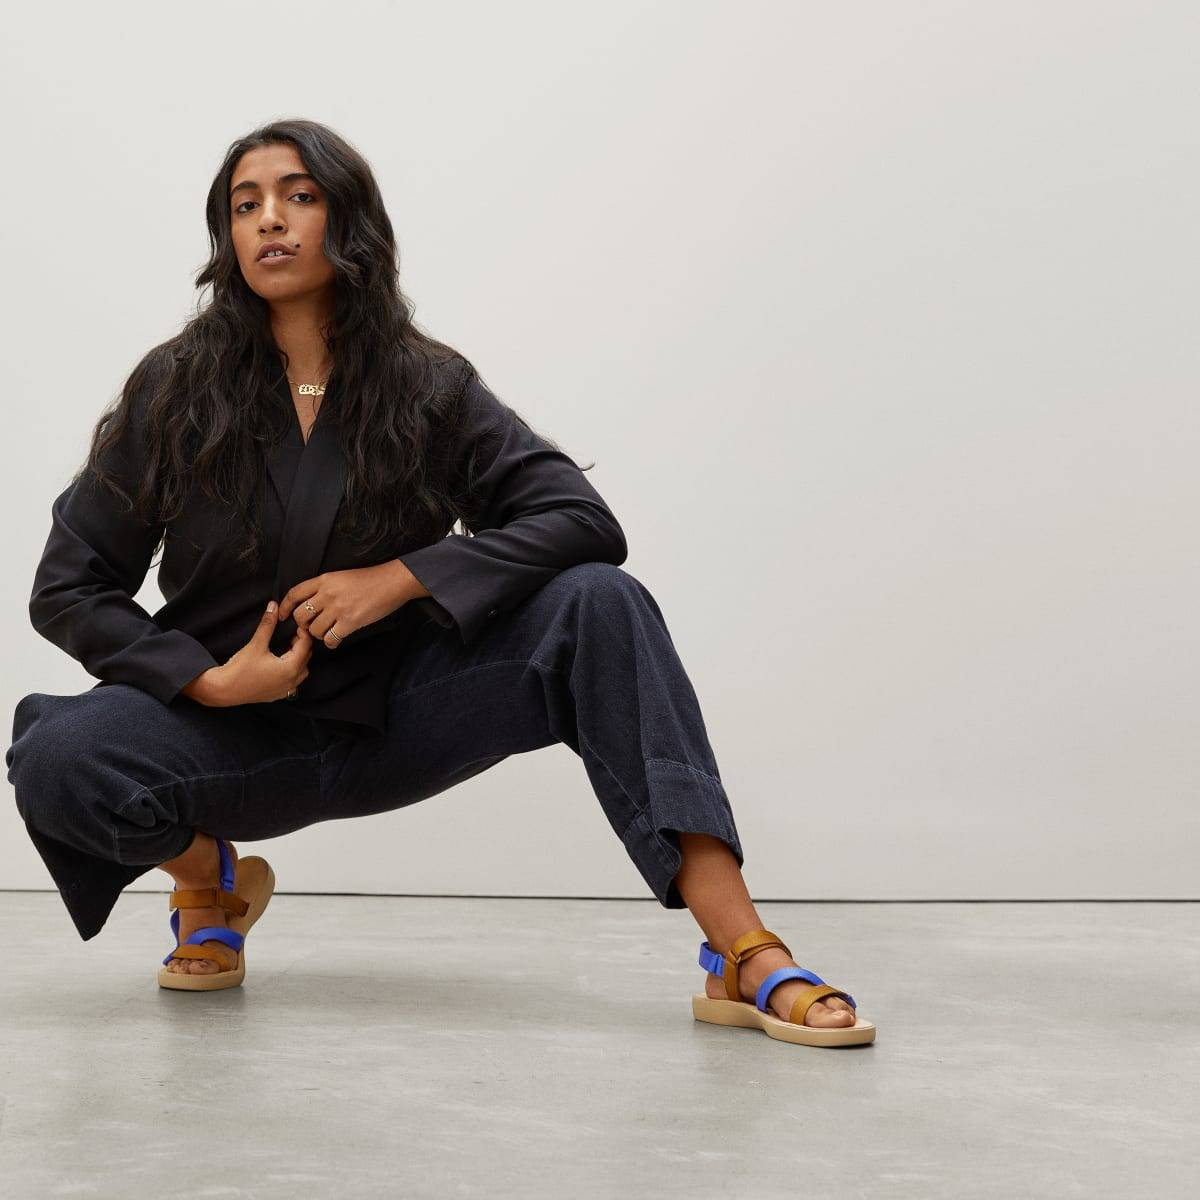 A model wears Everlane sandals made from recycled plastic bottles